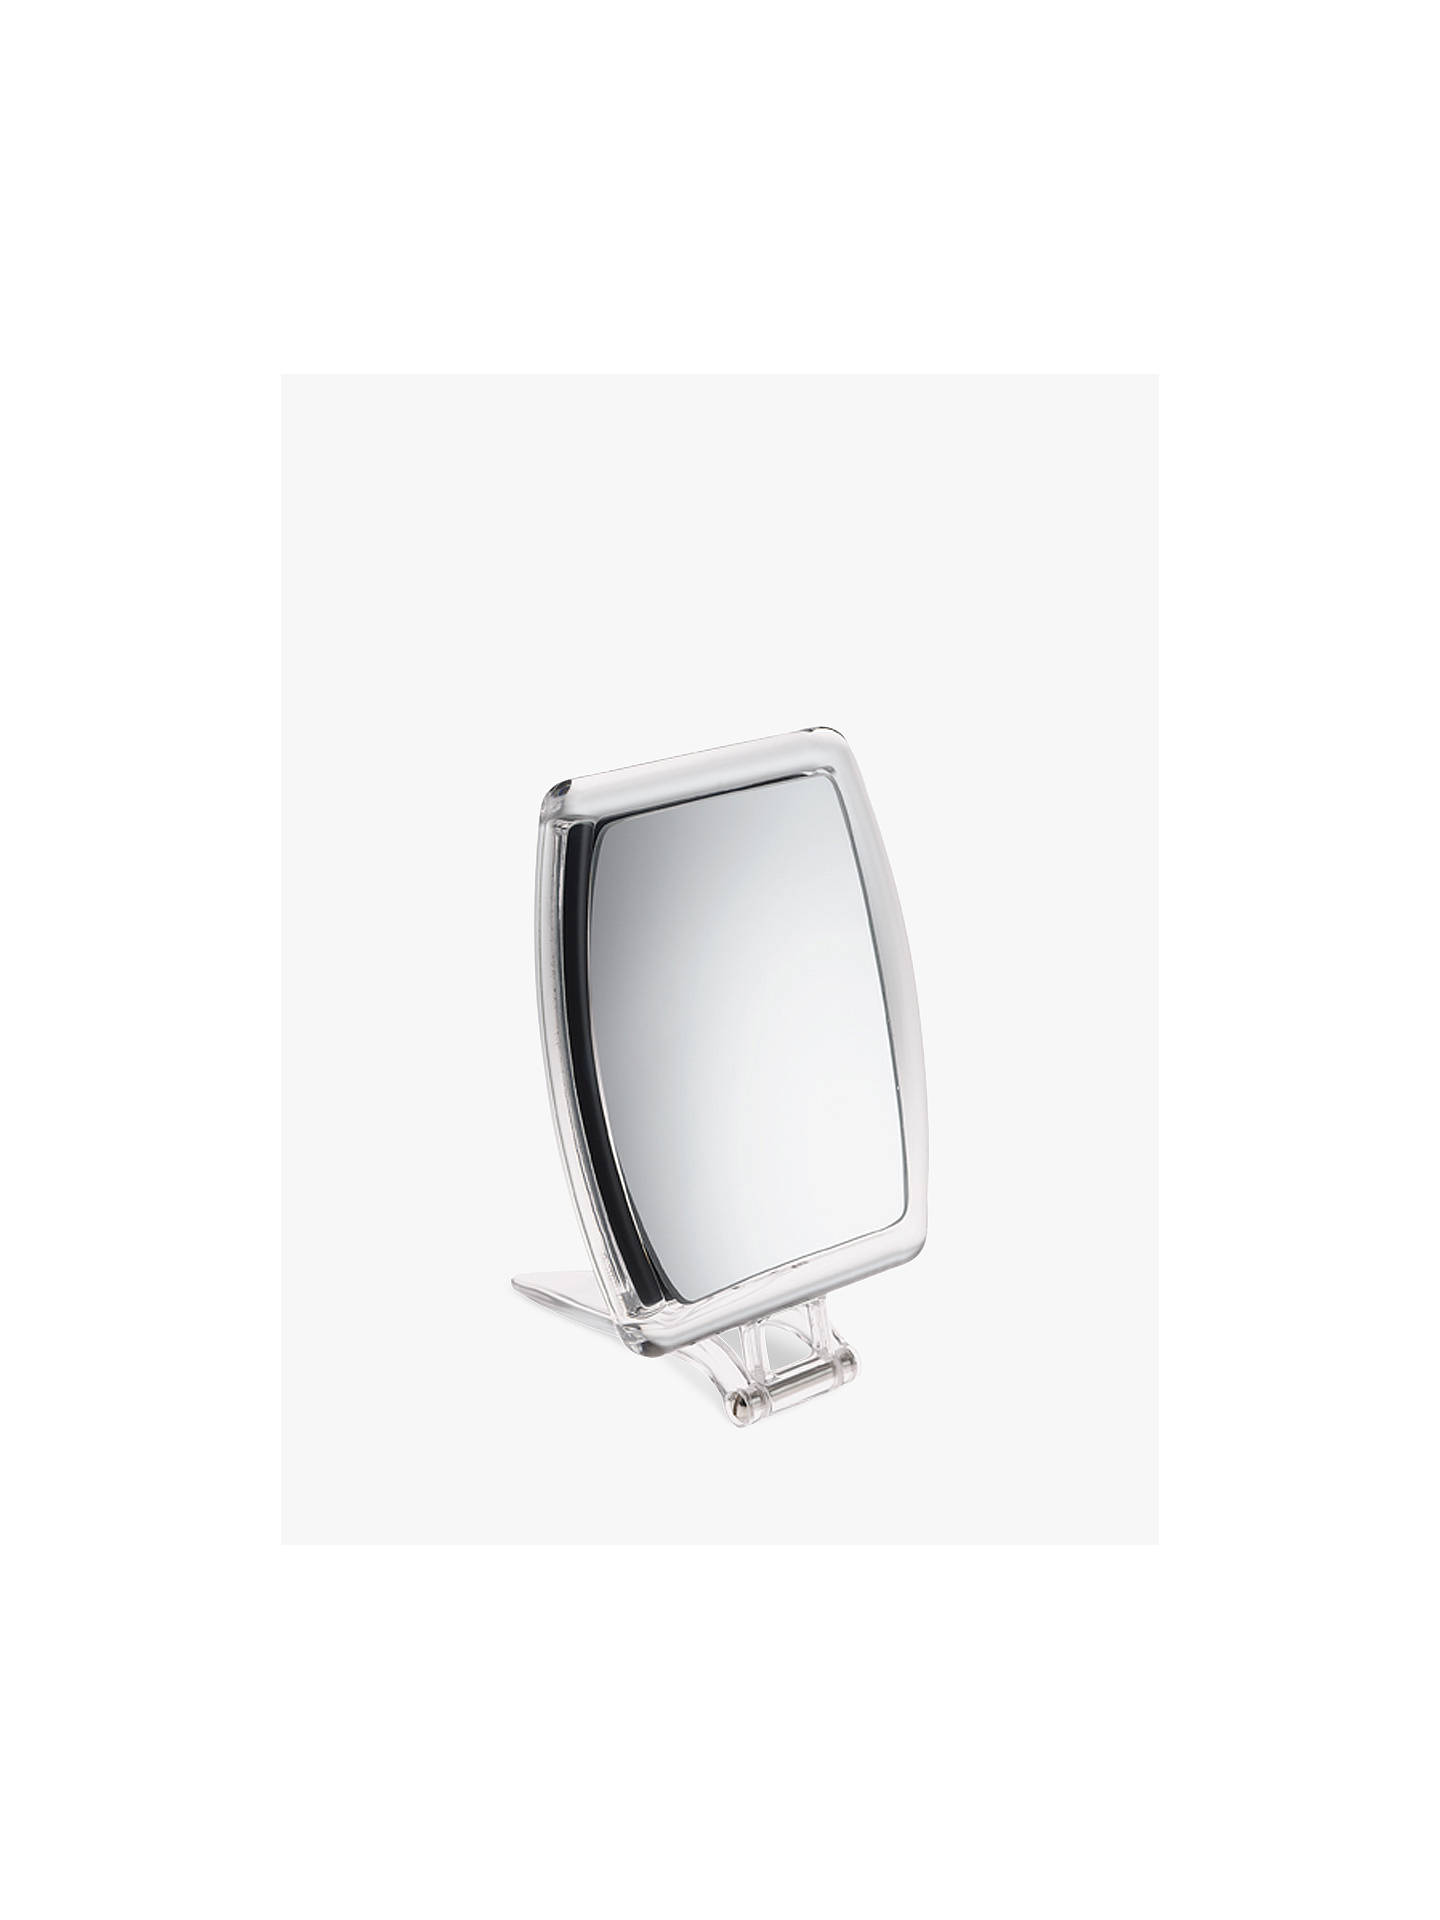 john lewis partners 10x magnification perspex mirror at. Black Bedroom Furniture Sets. Home Design Ideas